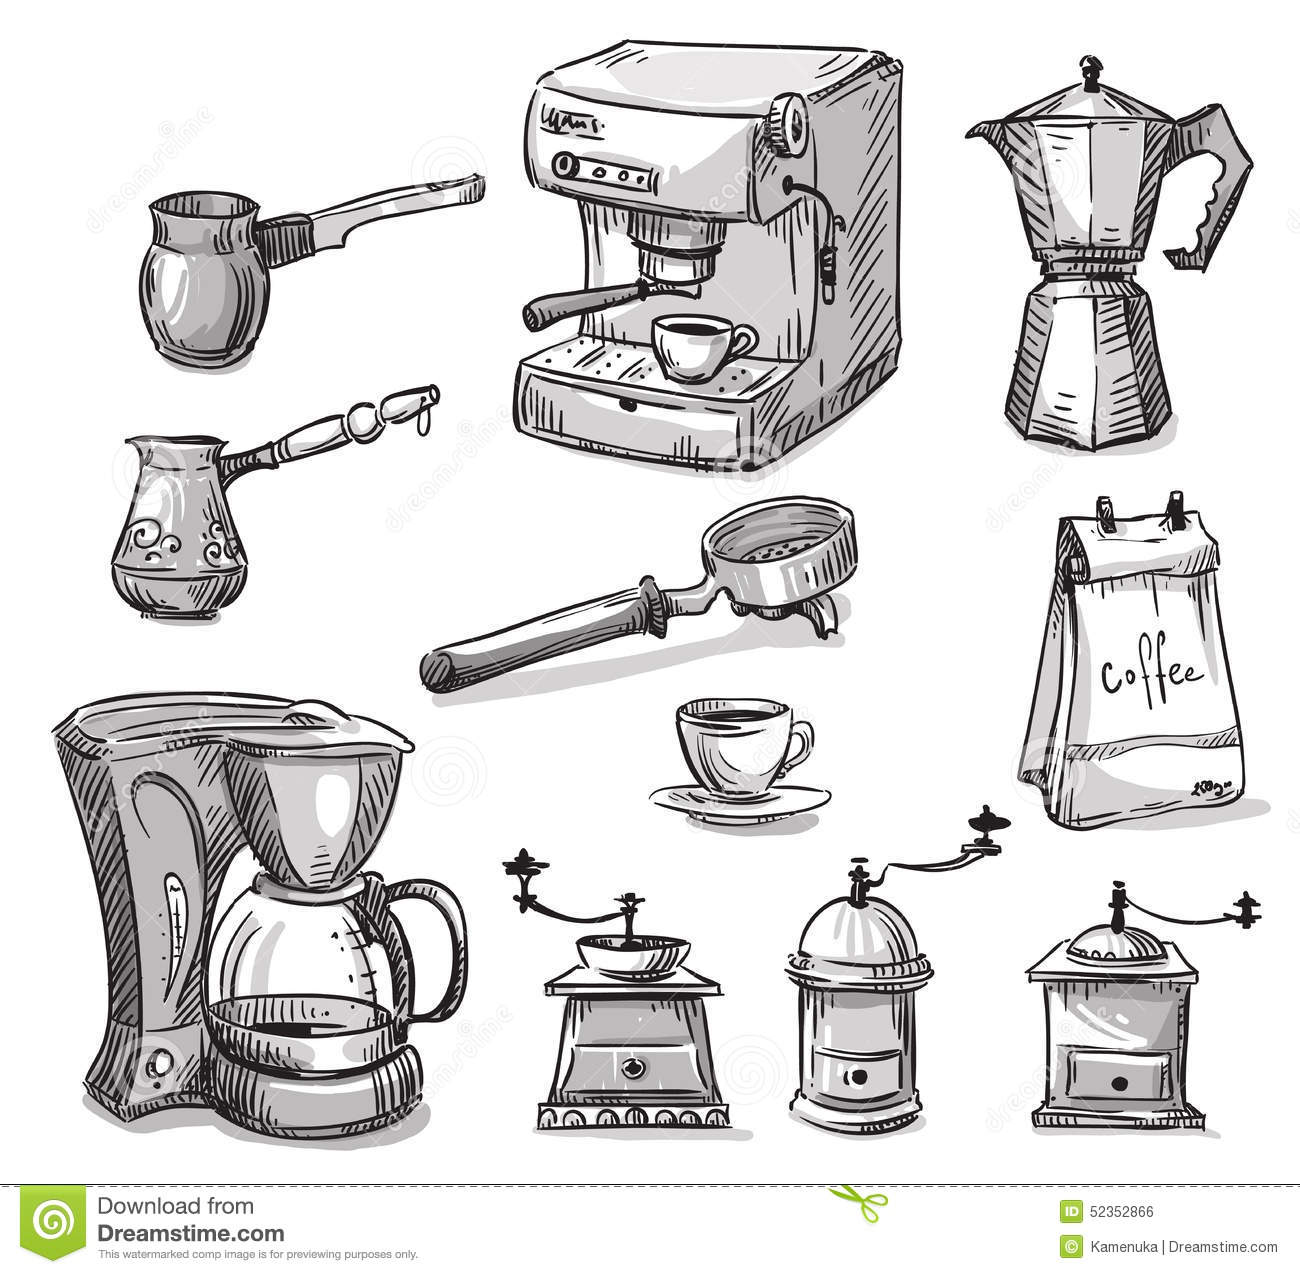 Coffee Art Maker Set Set Coffee Making Equipment Stock Vector Image 52352866